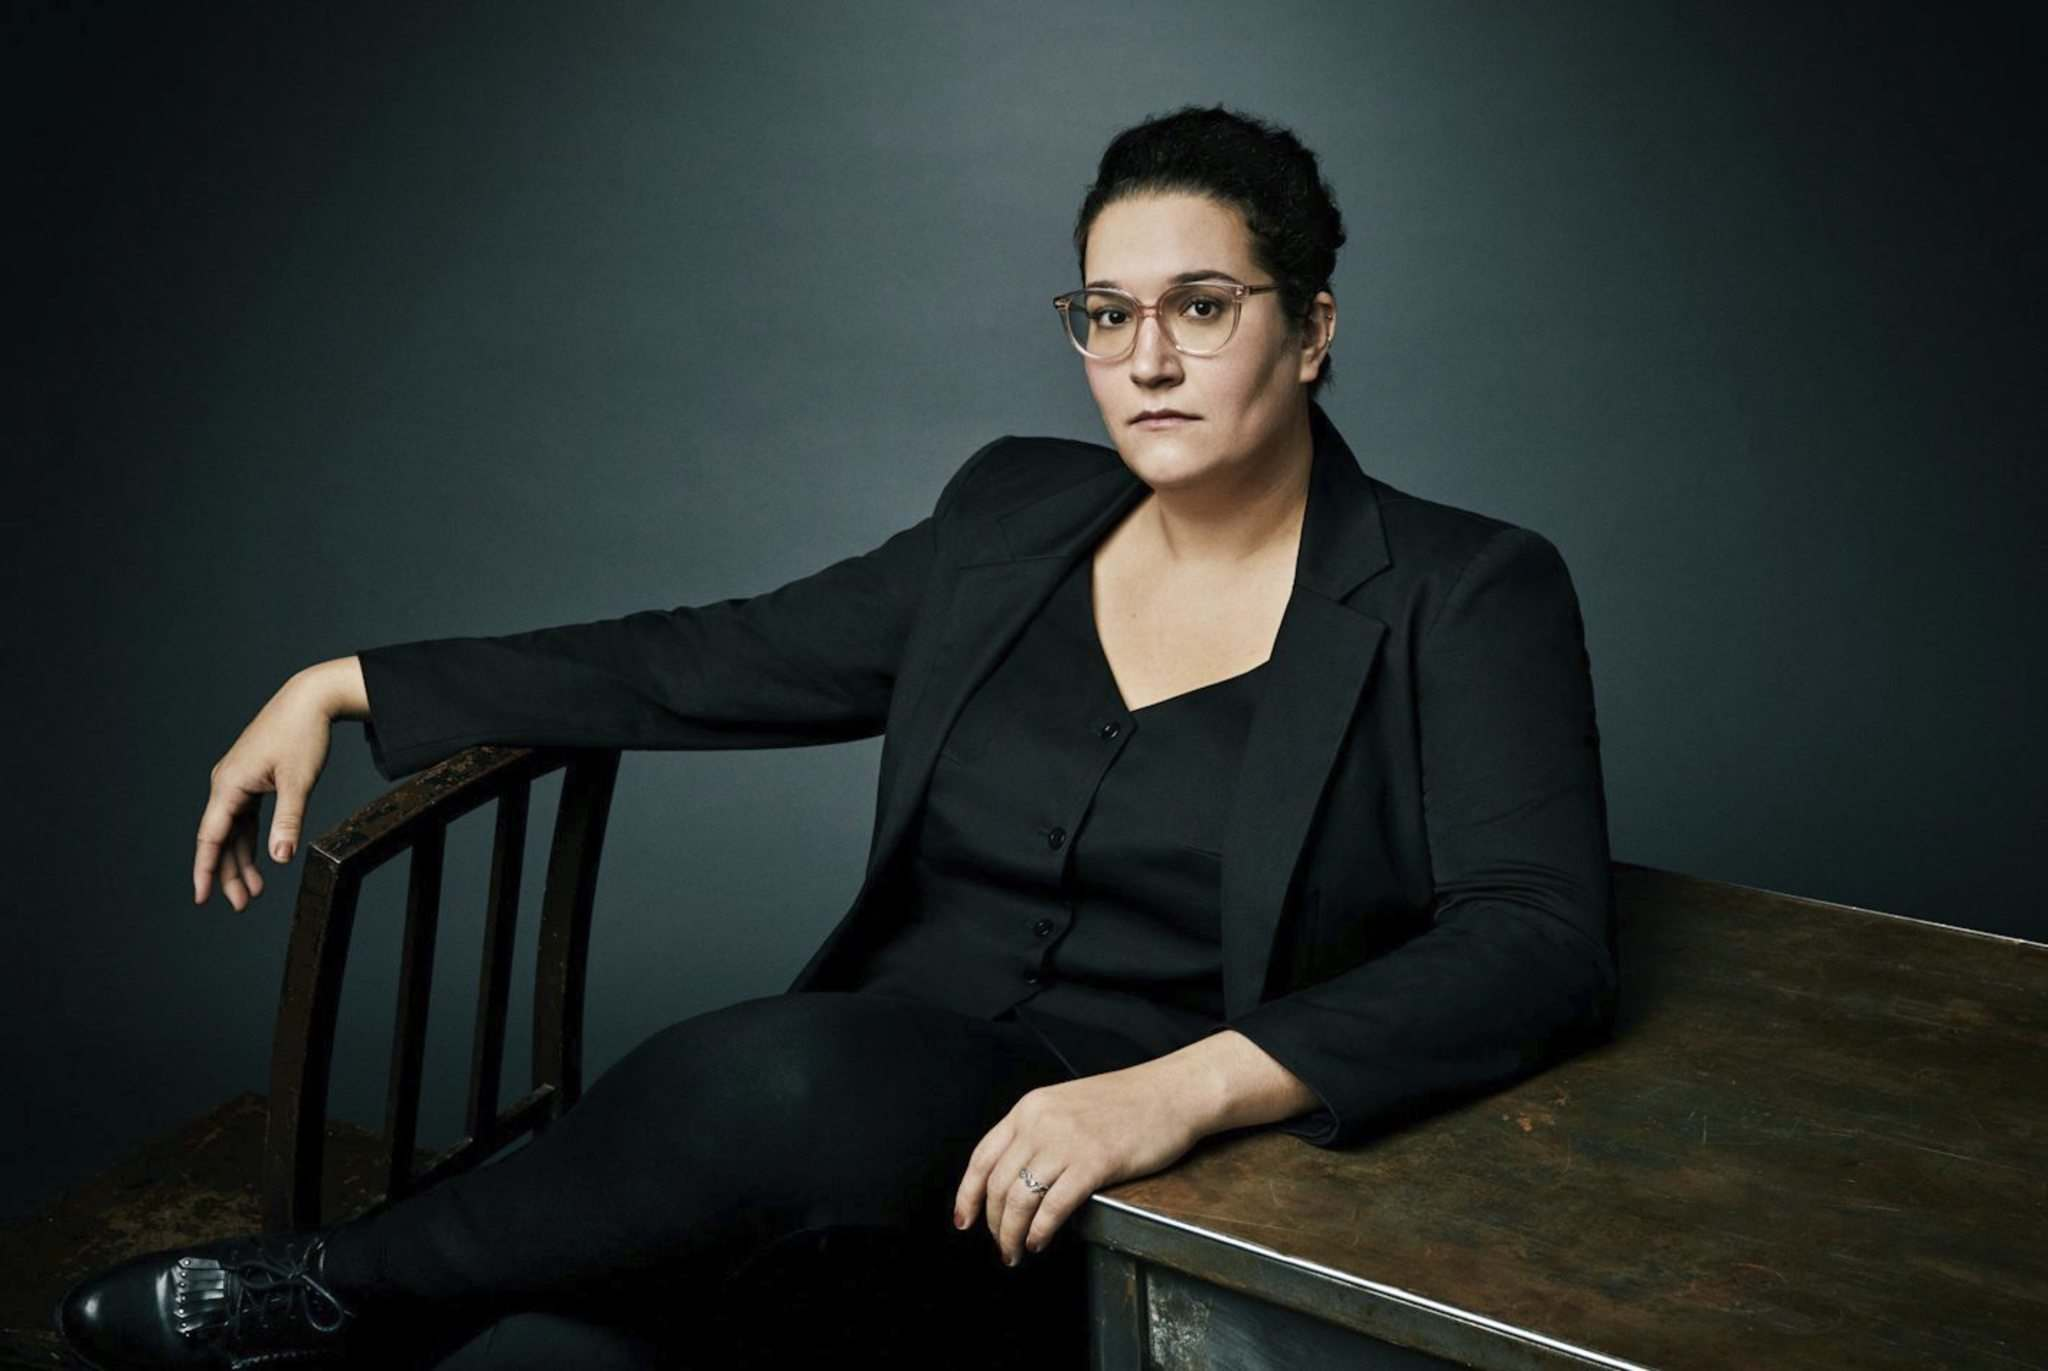 Carmen Maria Machado (photograph by Art Streiber/AUGUST)